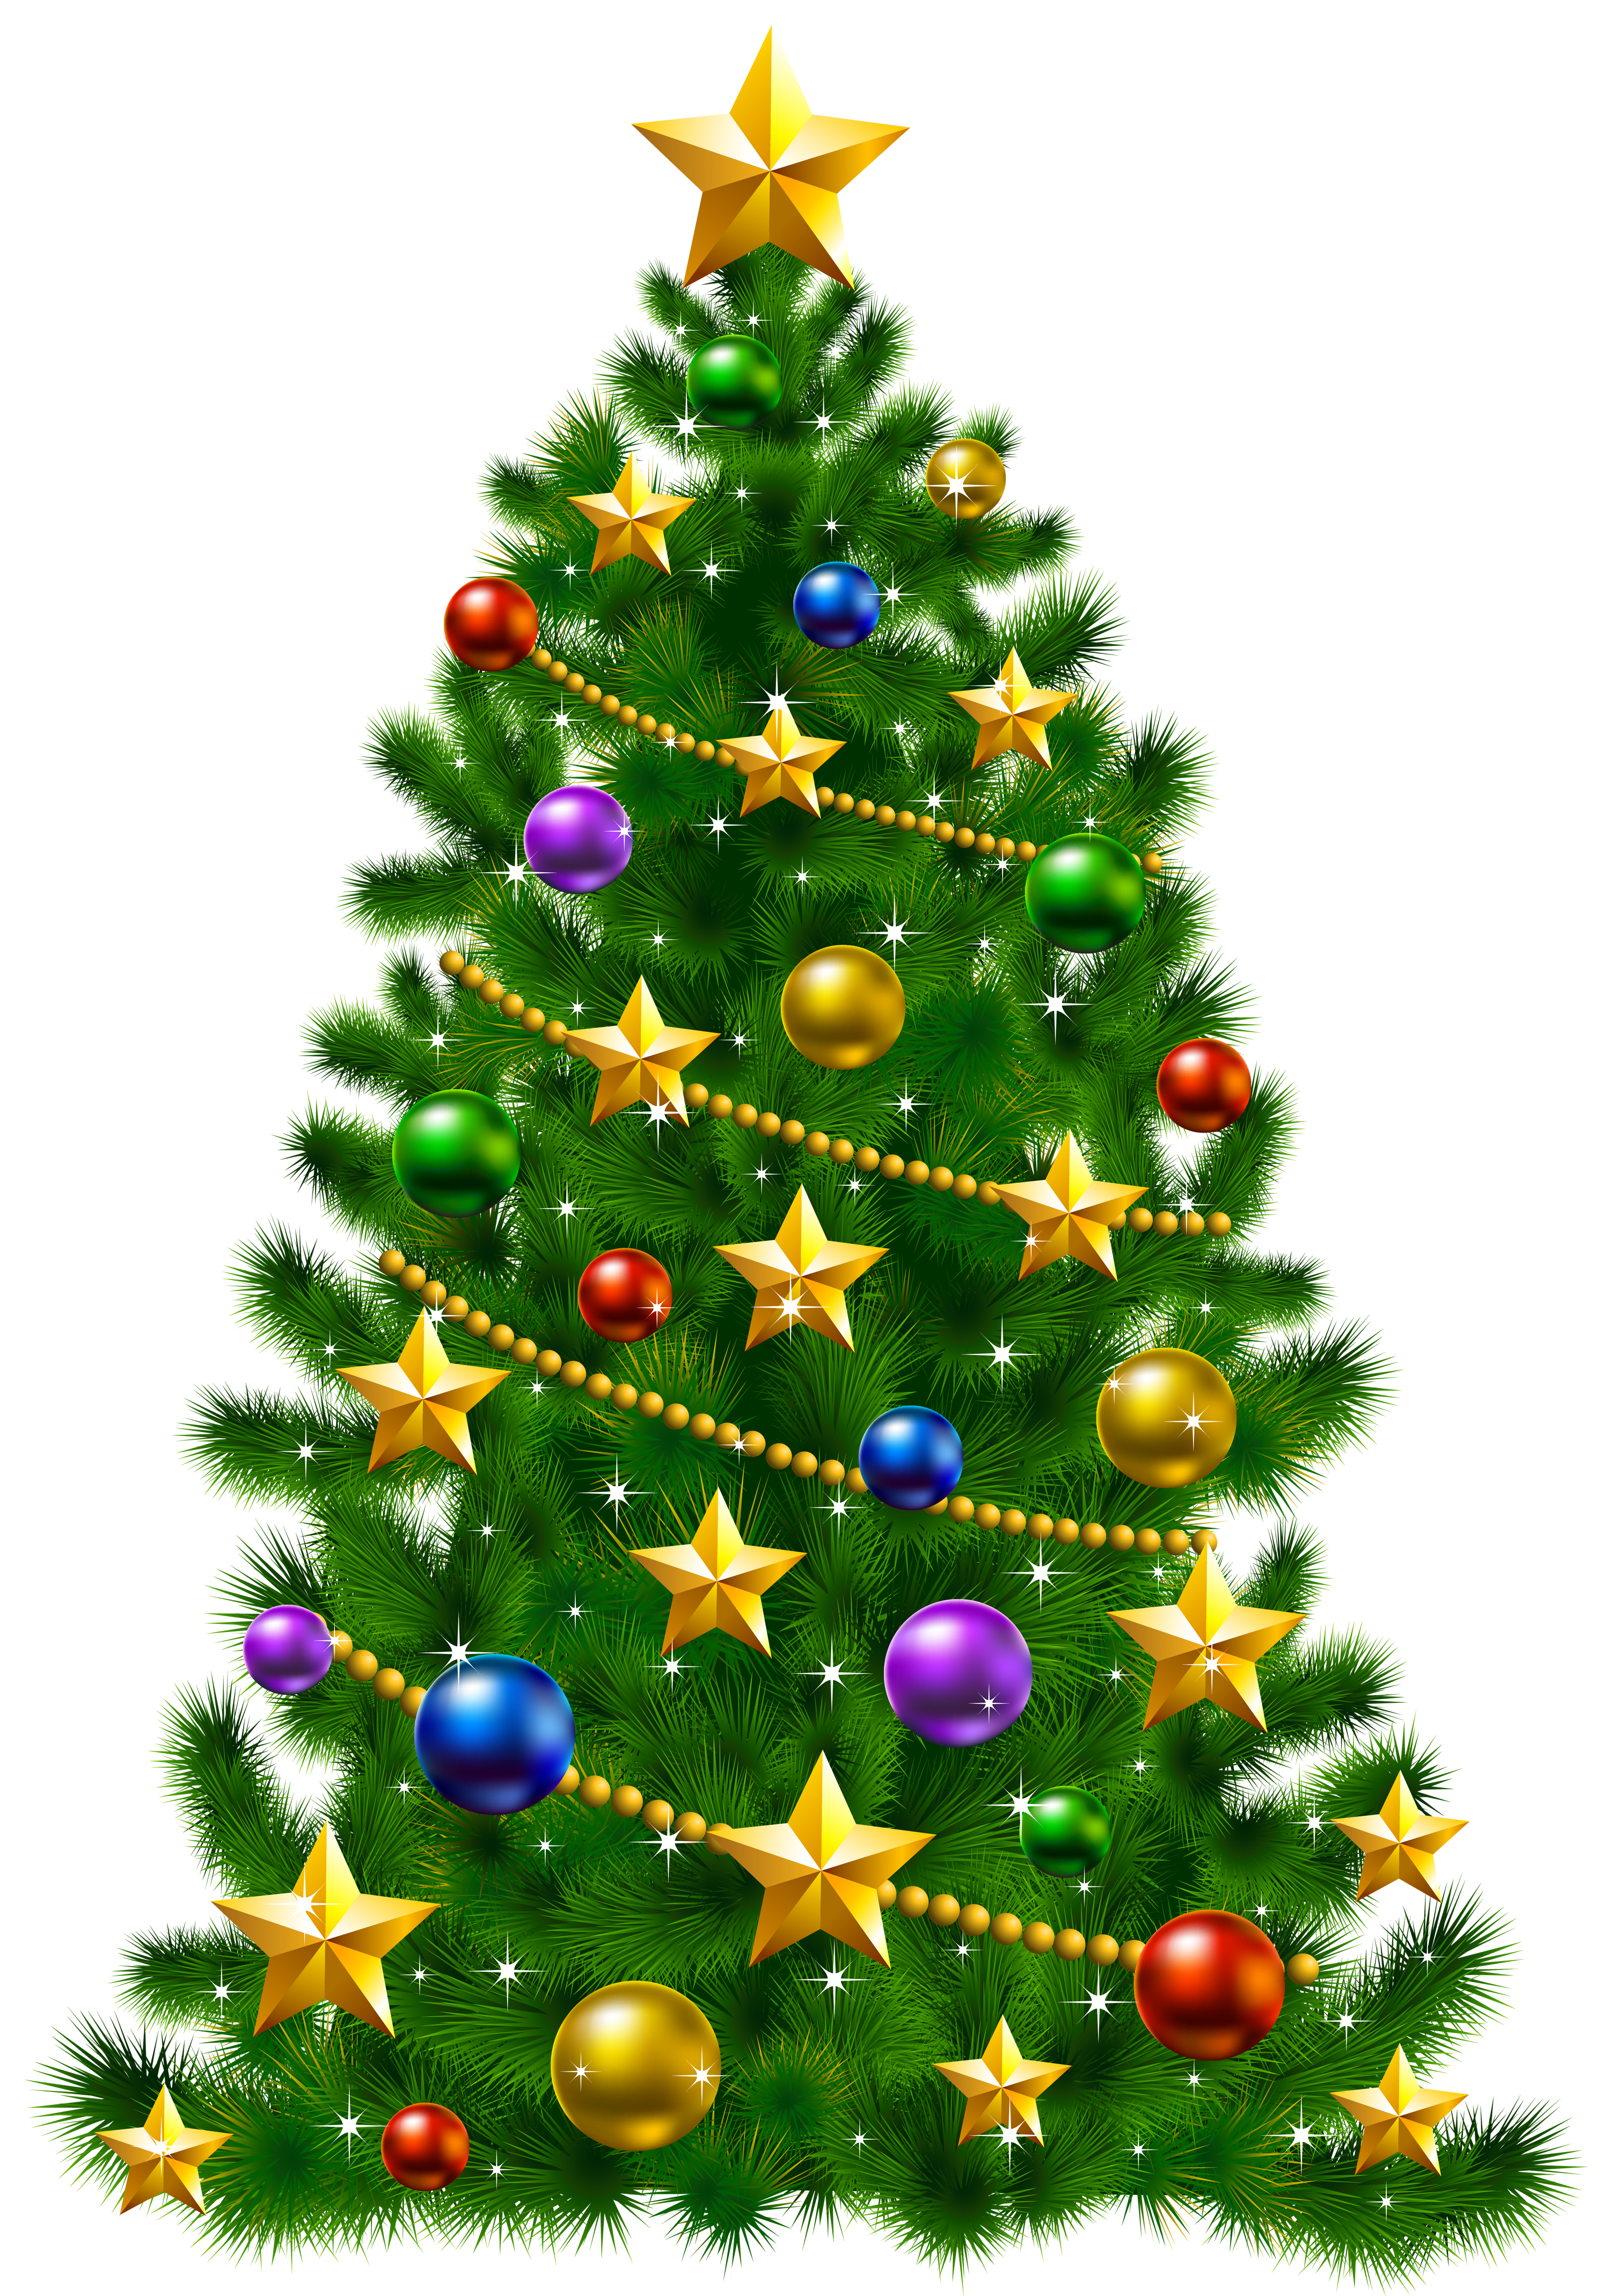 Transparent christmas tree images clipart svg library stock Christmas tree Christmas Day Santa Claus Clip art ... svg library stock